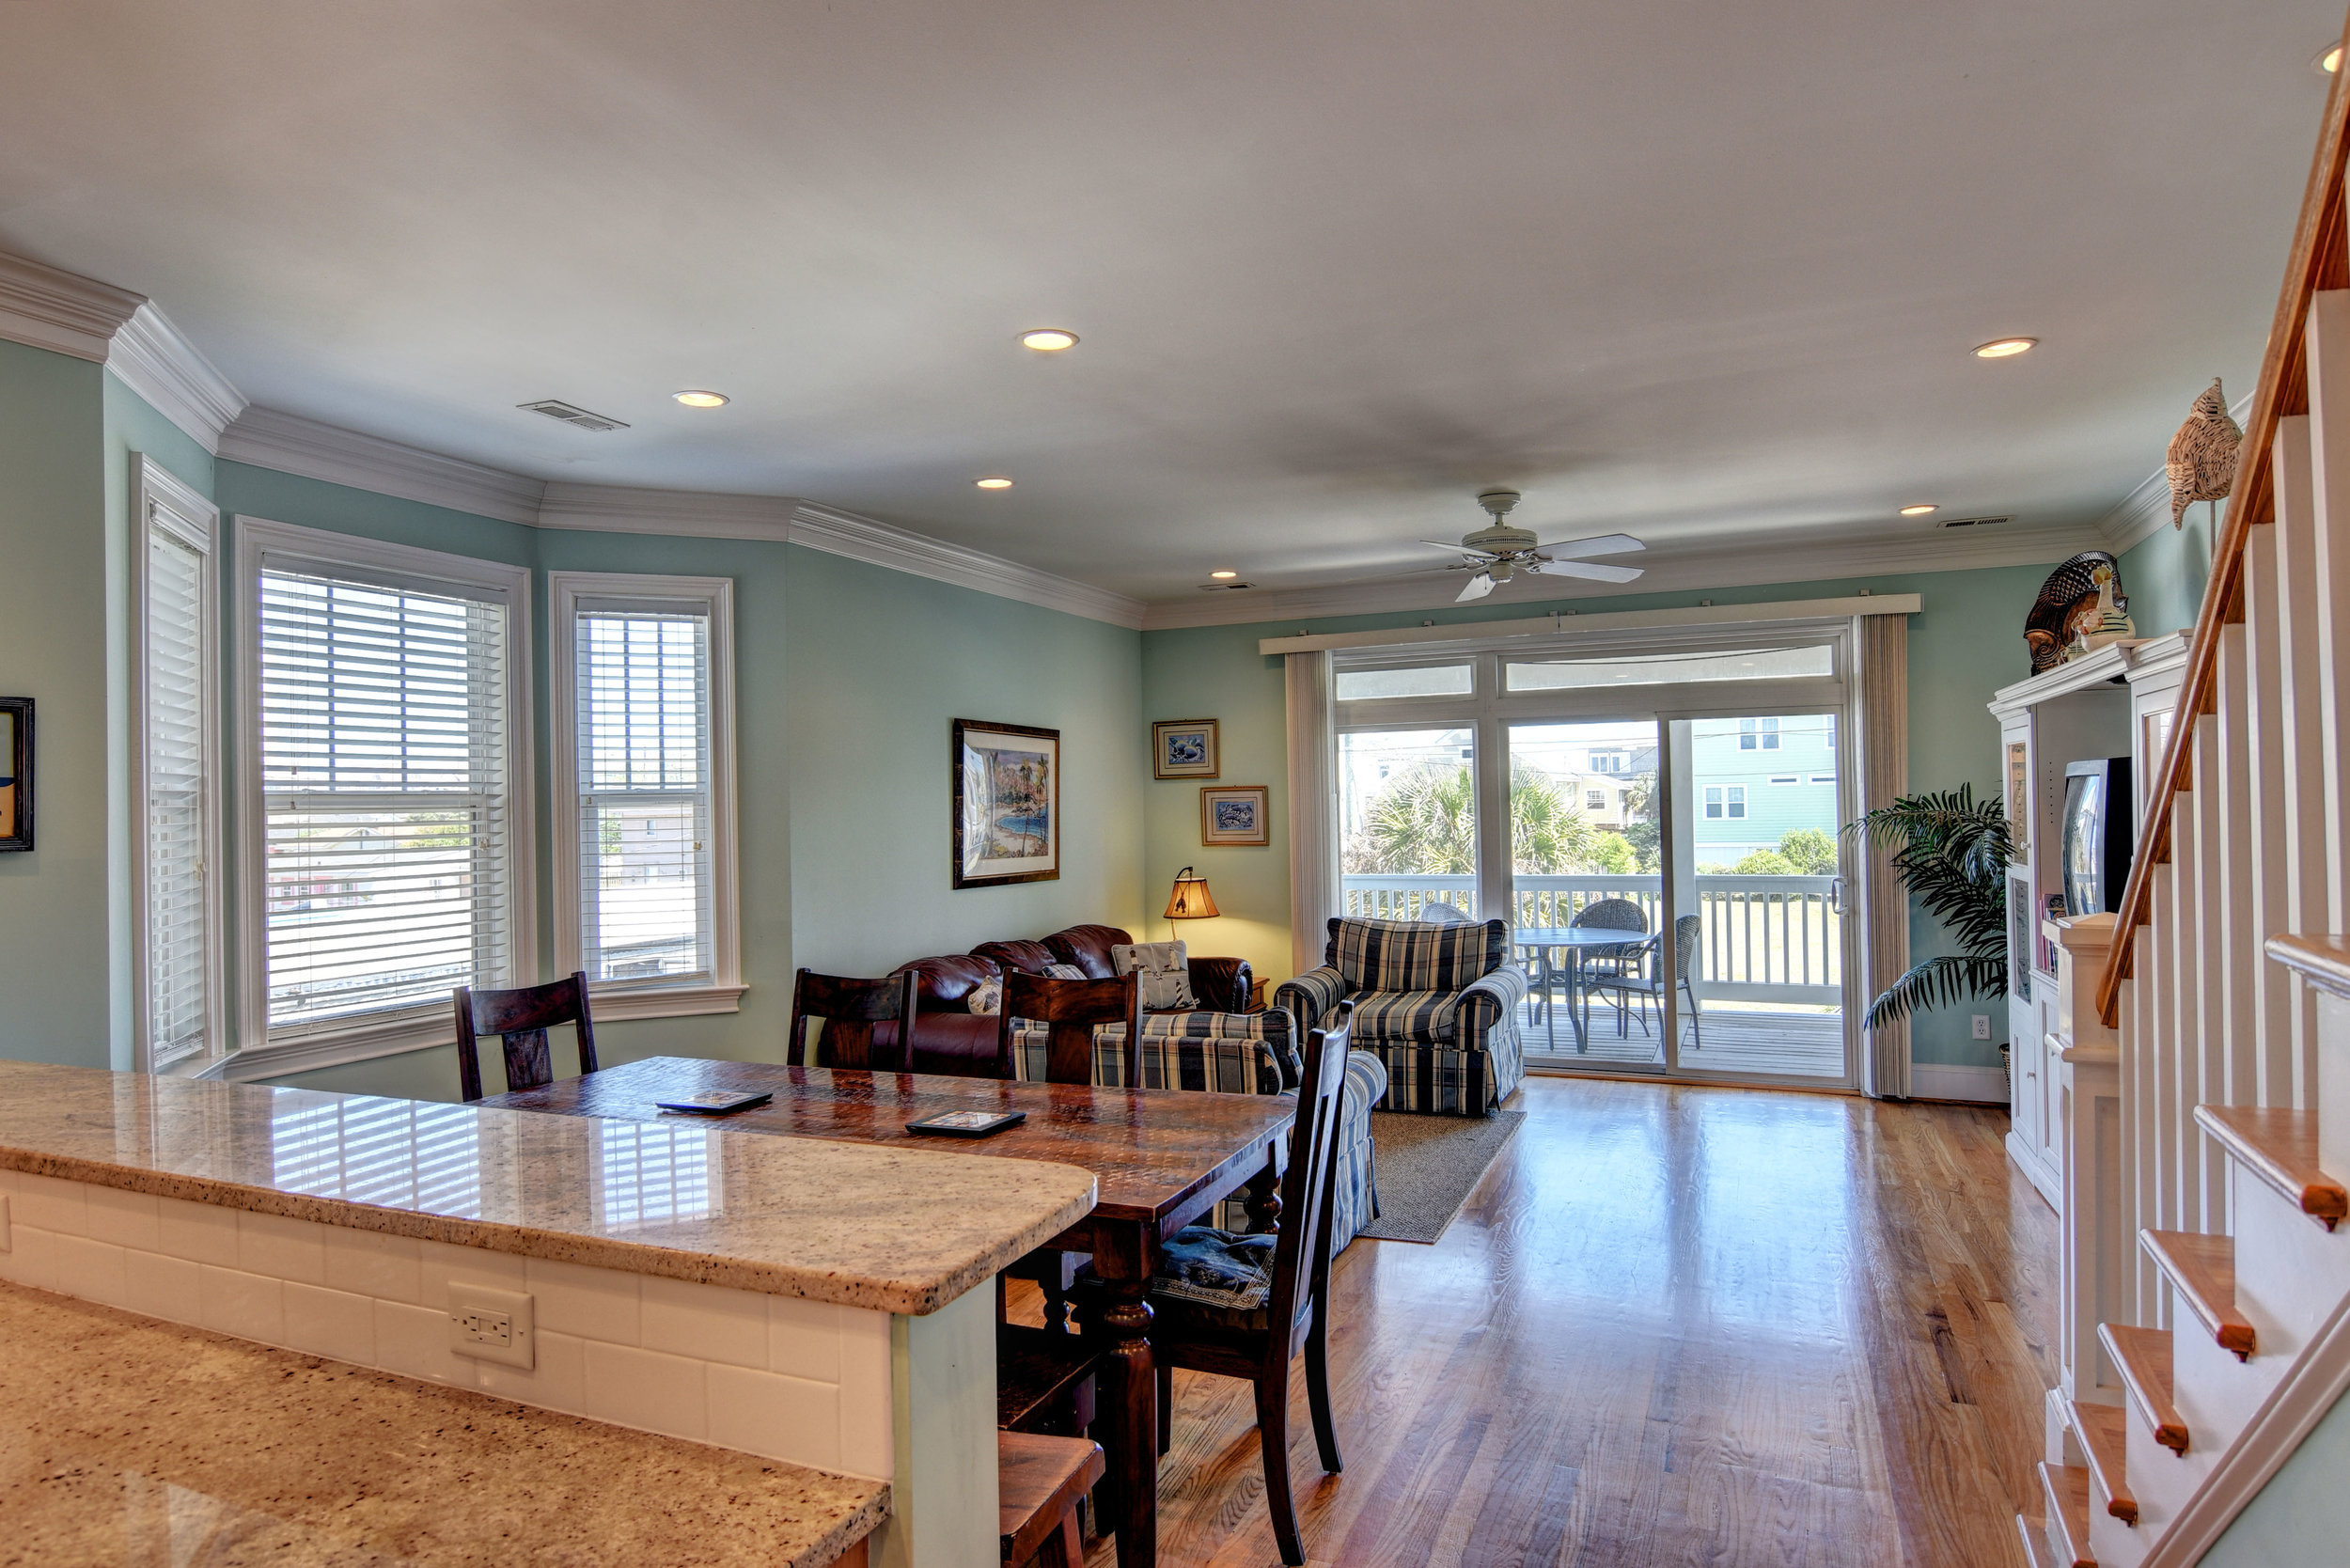 1514 Bowfin Lane Unit 2-print-012-5-View of Main Living Level with-4200x2803-300dpi.jpg